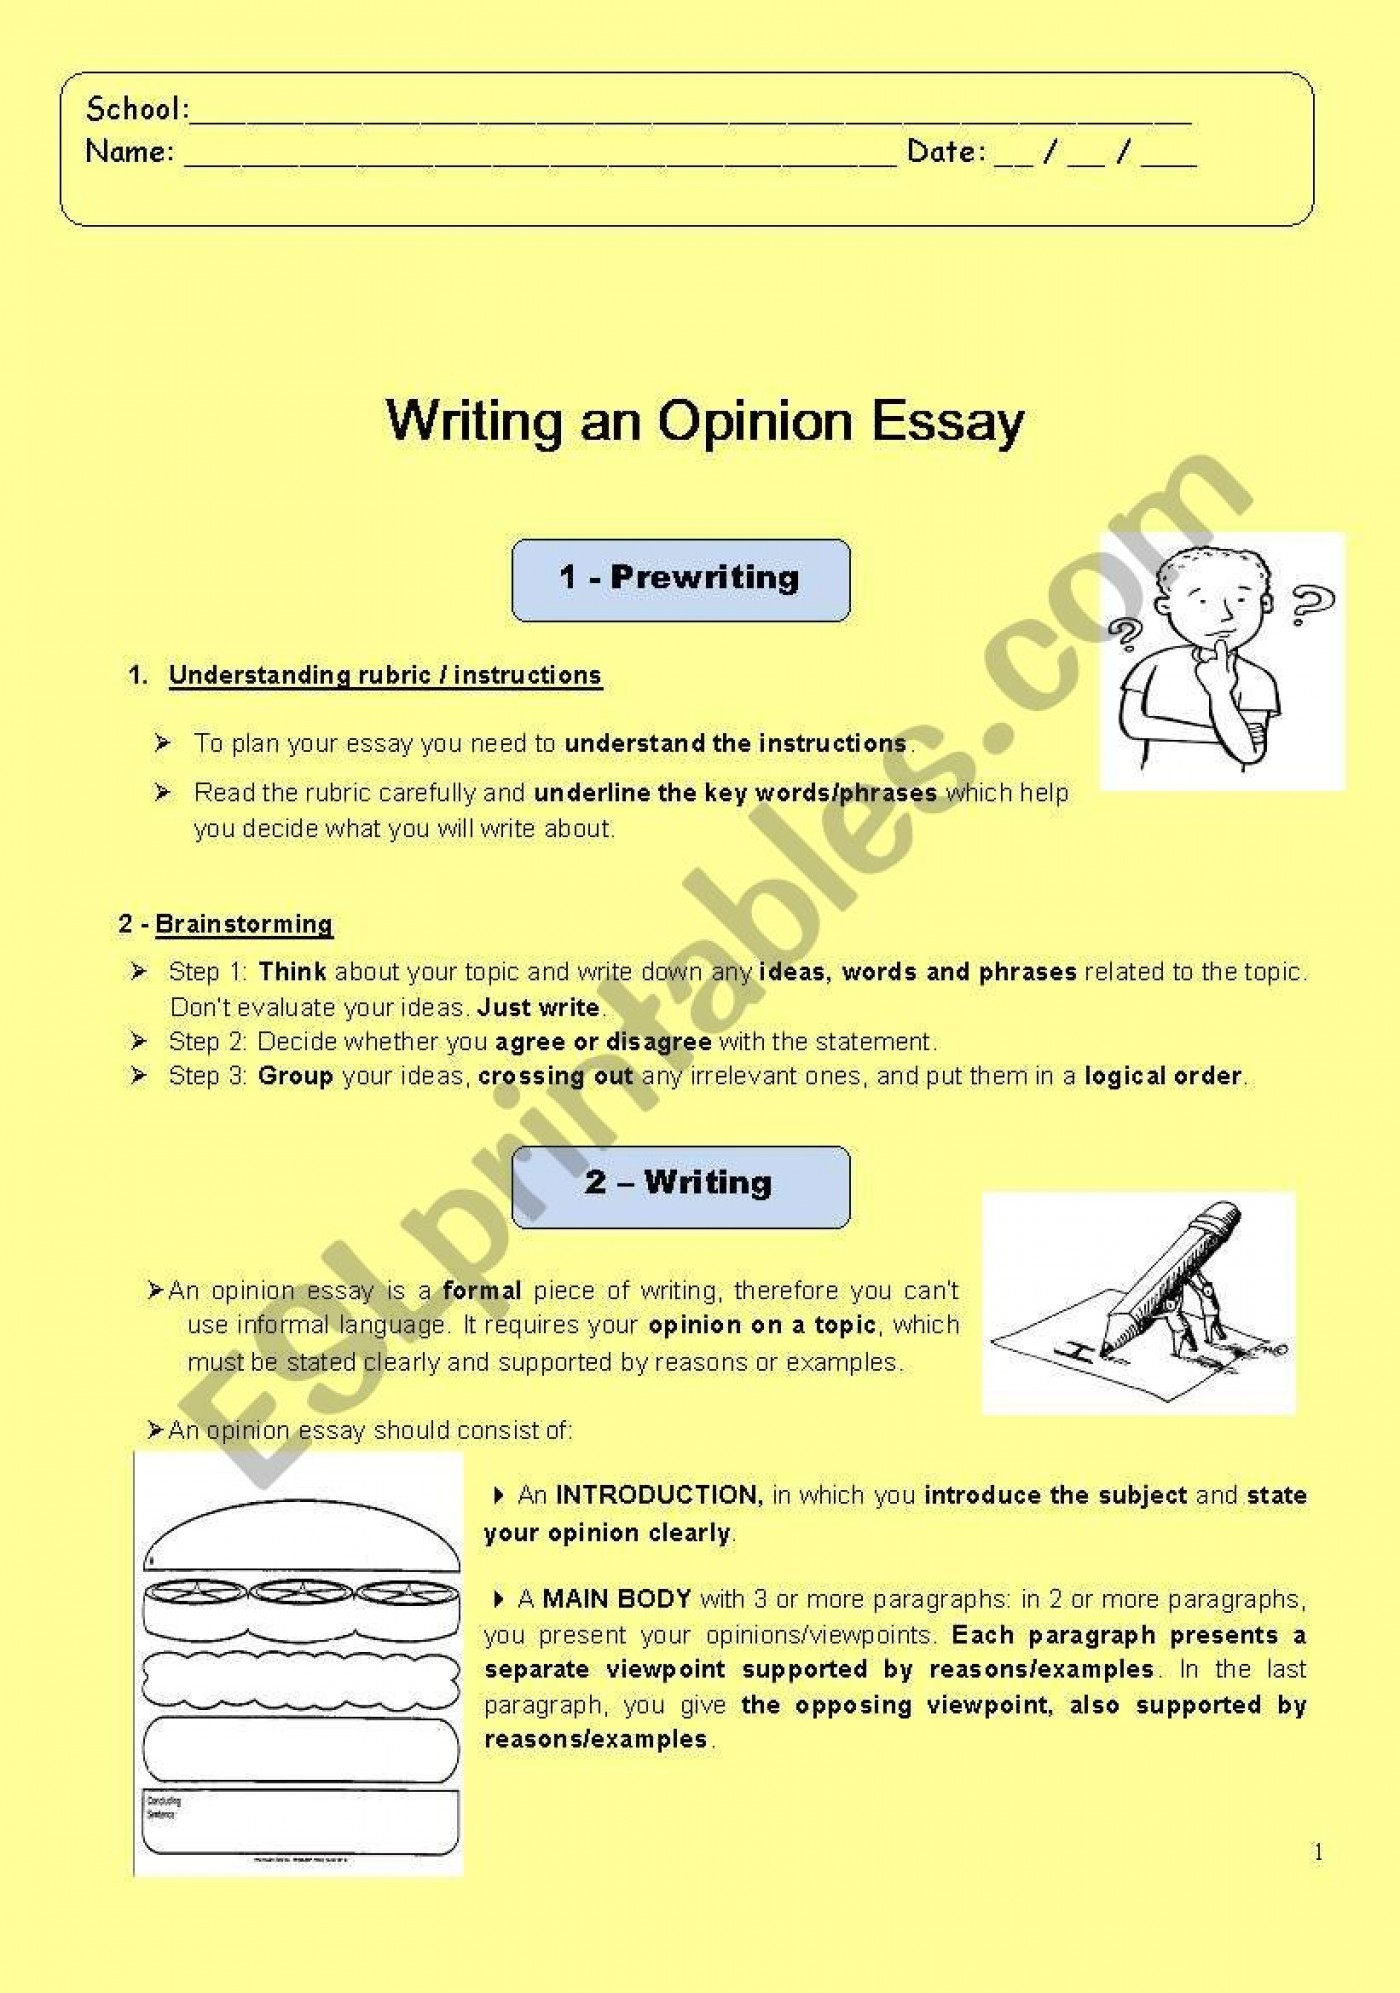 014 How To Write An Opinion Essay 519469 1 Unbelievable Conclusion On A Book Video 1400